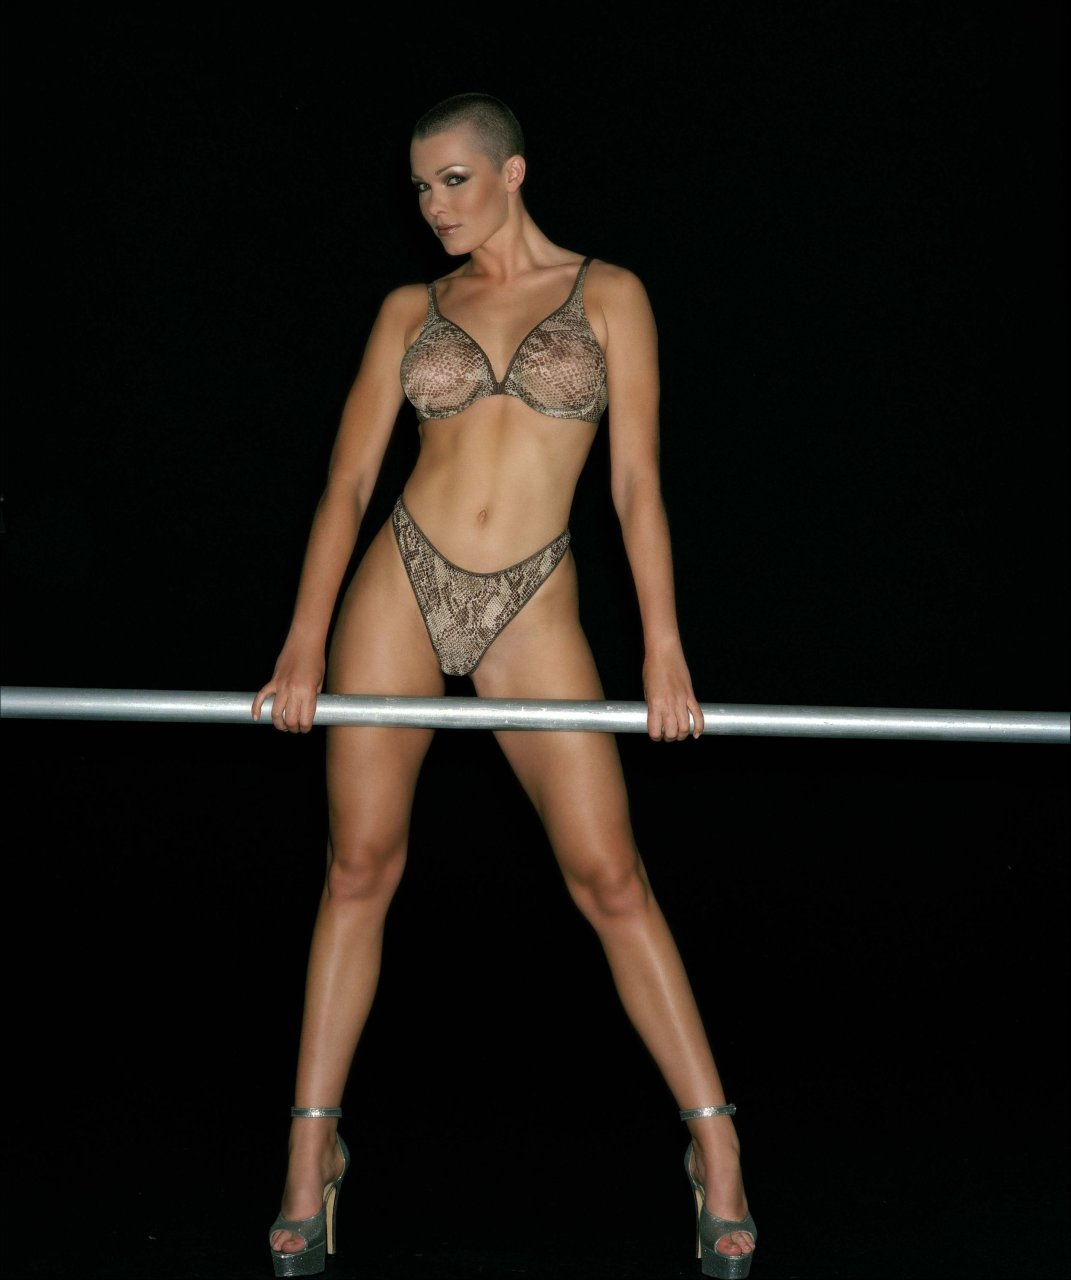 Nell mcandrew nude sexy 7 photos nudes (32 pic)